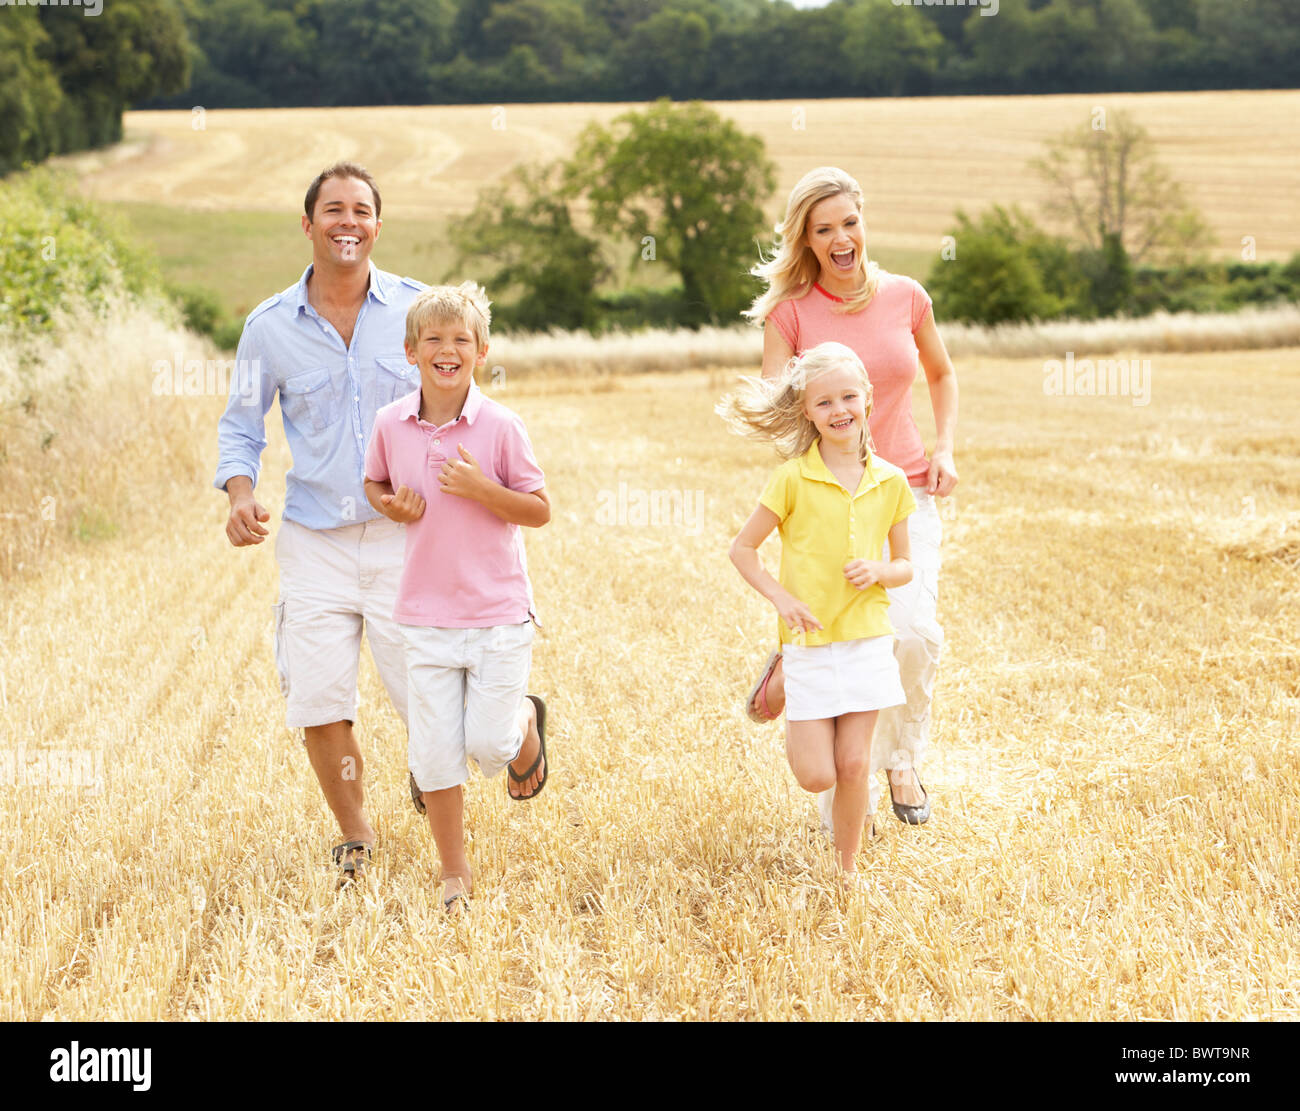 Family Running Together Through Summer Harvested Field - Stock Image